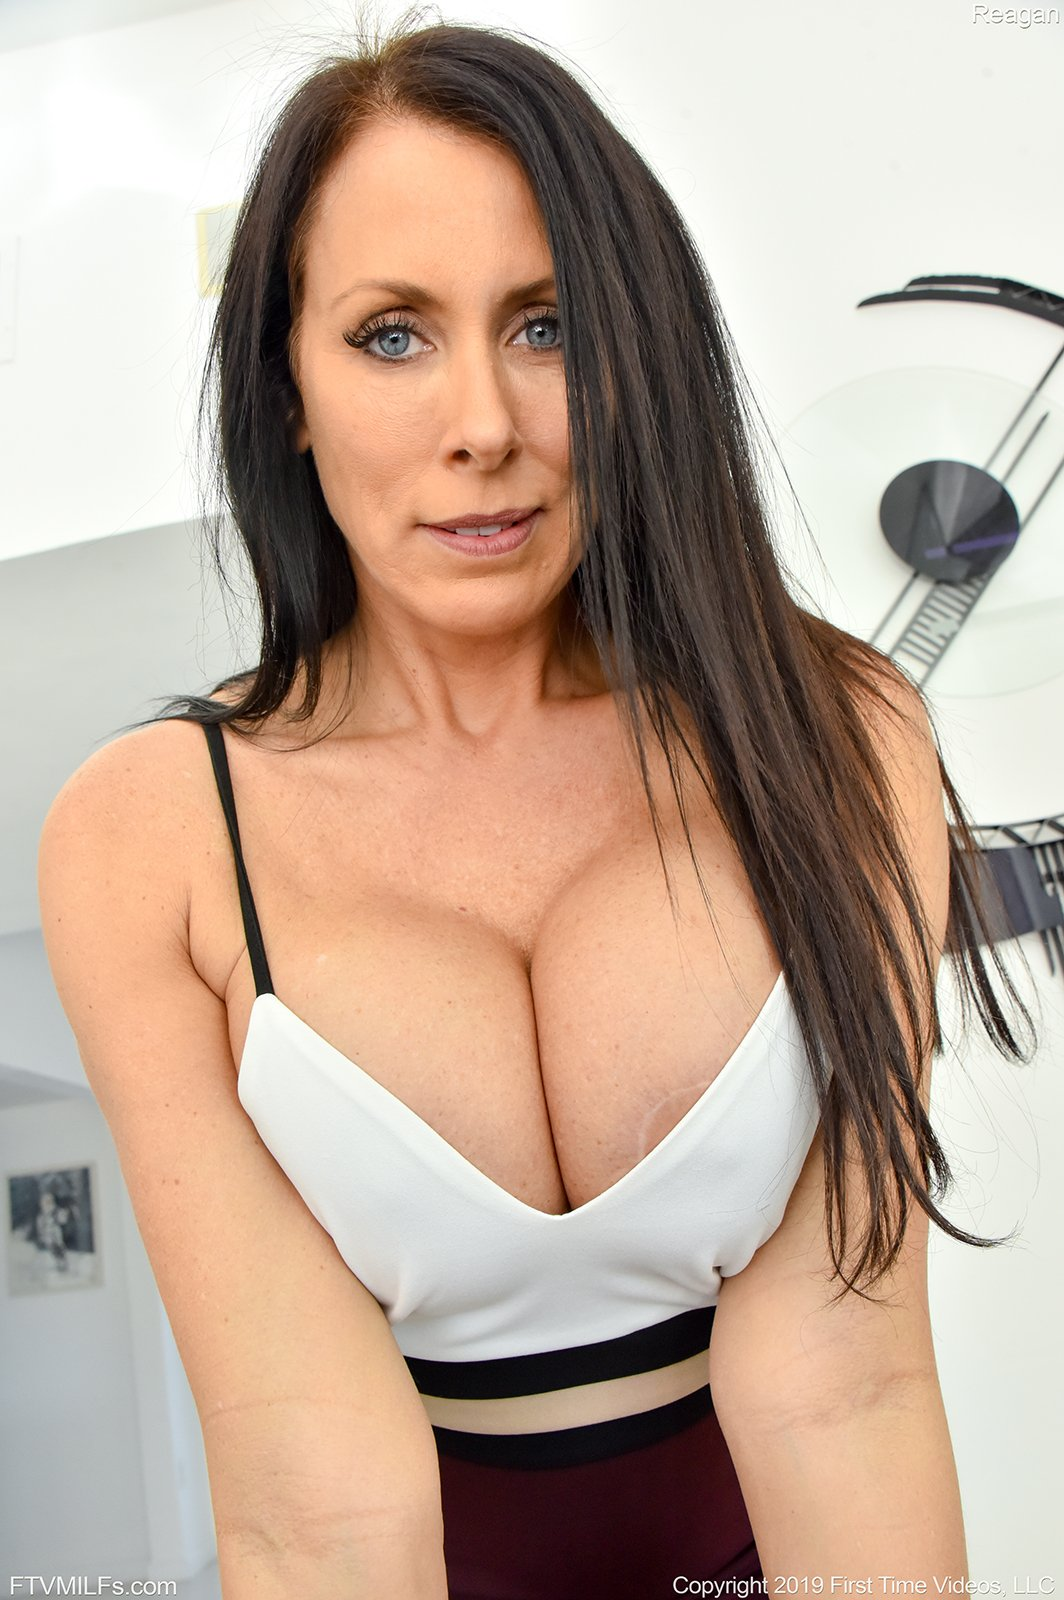 Blue Eyed Indian MILF Exposed | Sex Pictures Albums